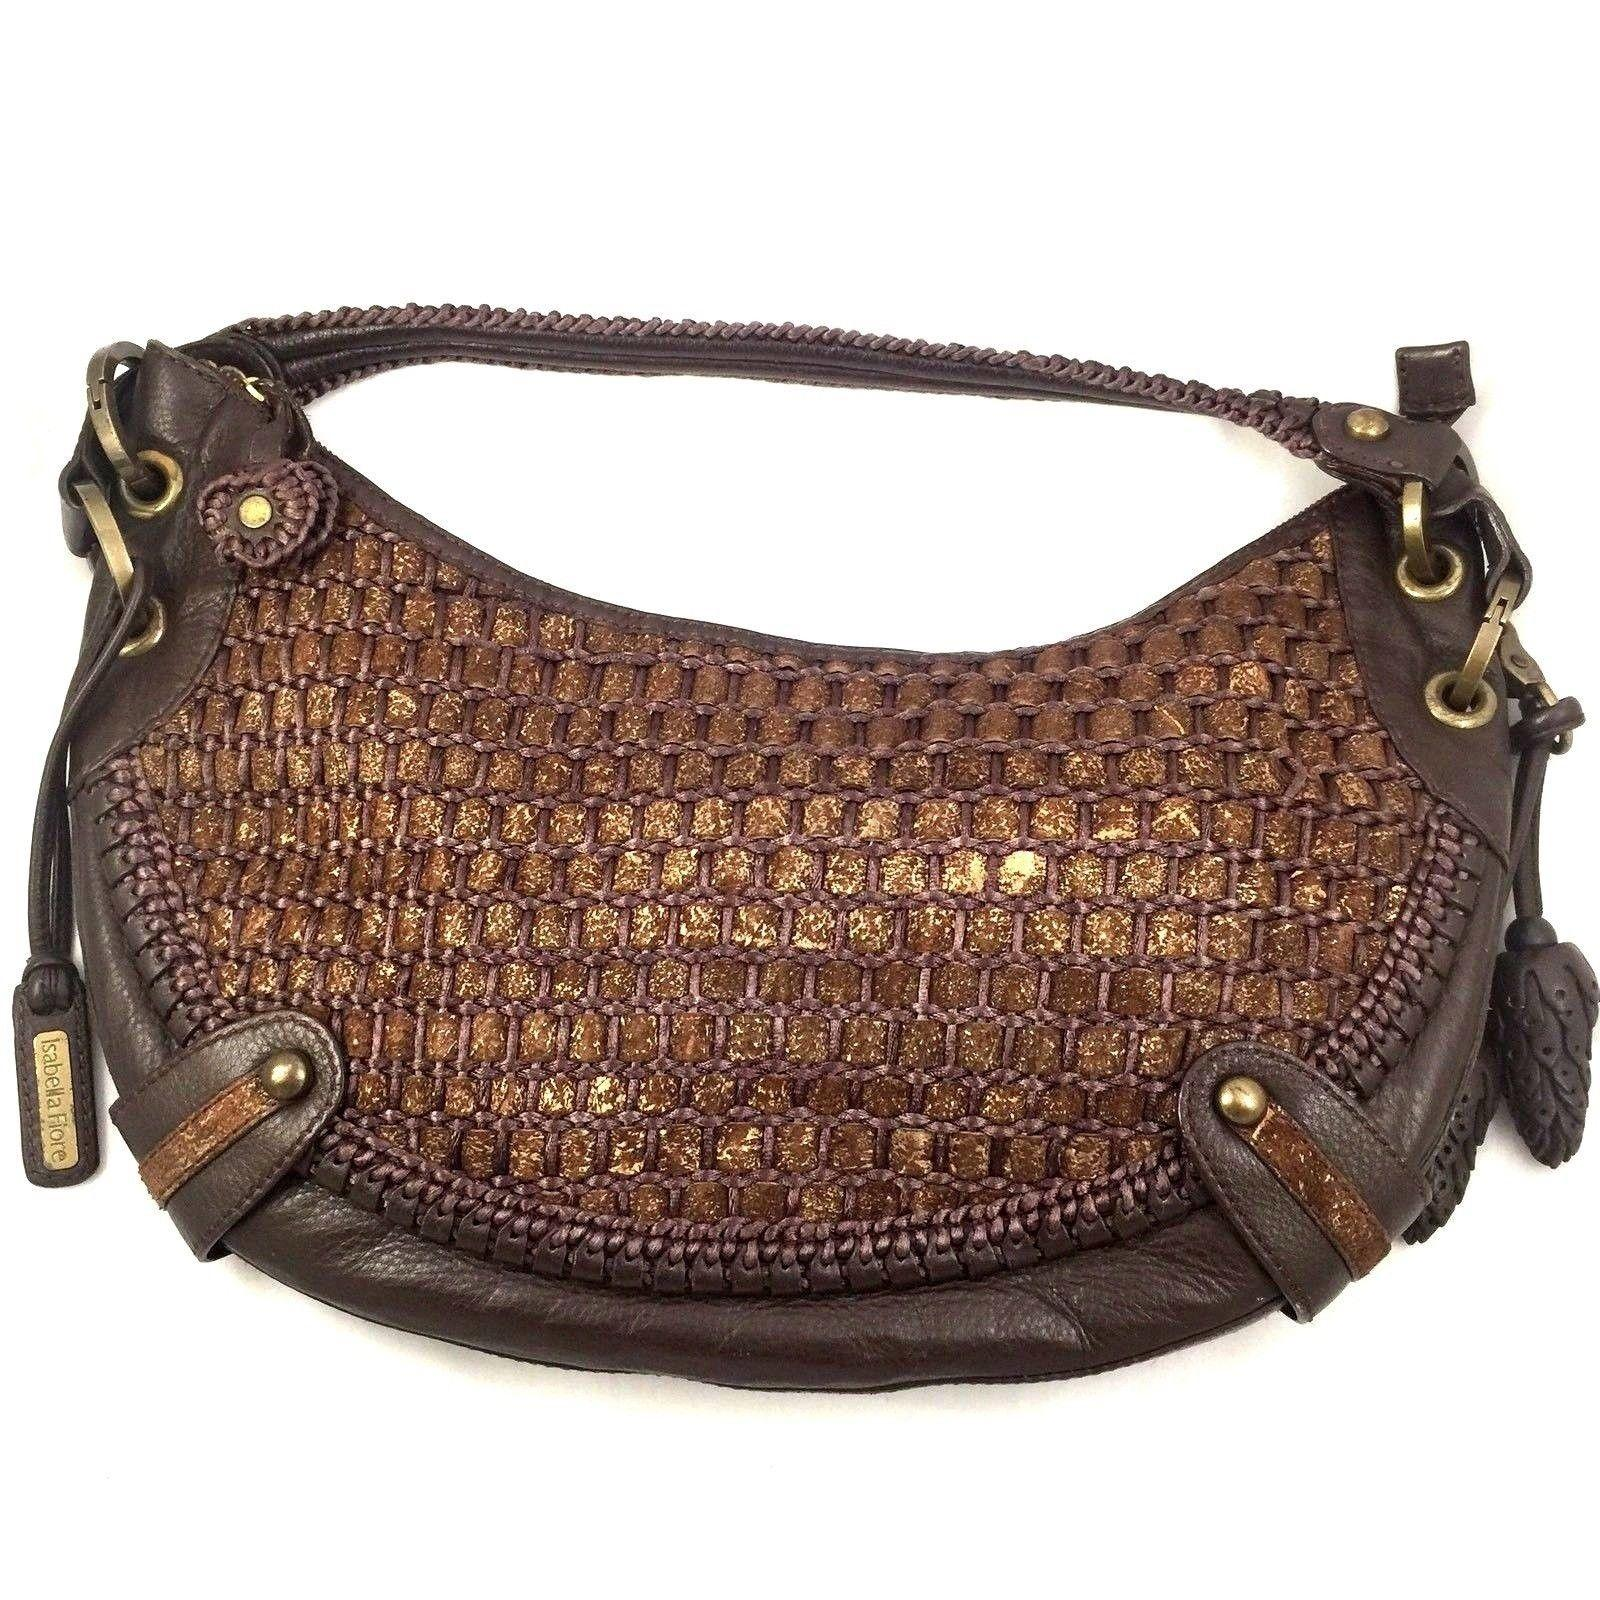 Isabella fiore handbag purse braided woven brown leather shoulder jpg  960x960 Isabella fiore handbags 4d13097ee35ce